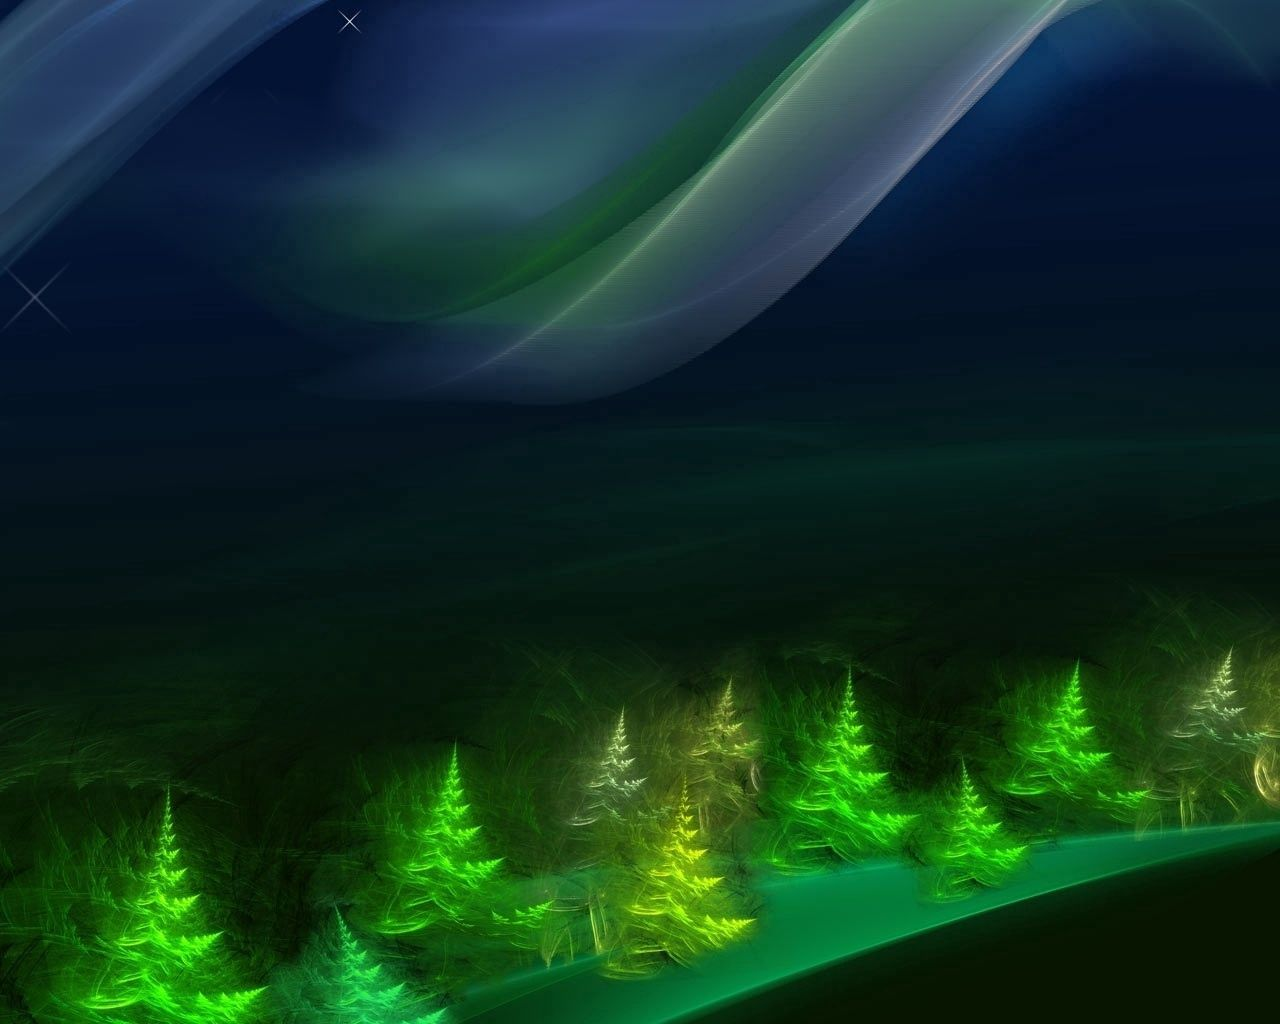 148235 download wallpaper Abstract, Shining, Greens, Fir-Trees screensavers and pictures for free